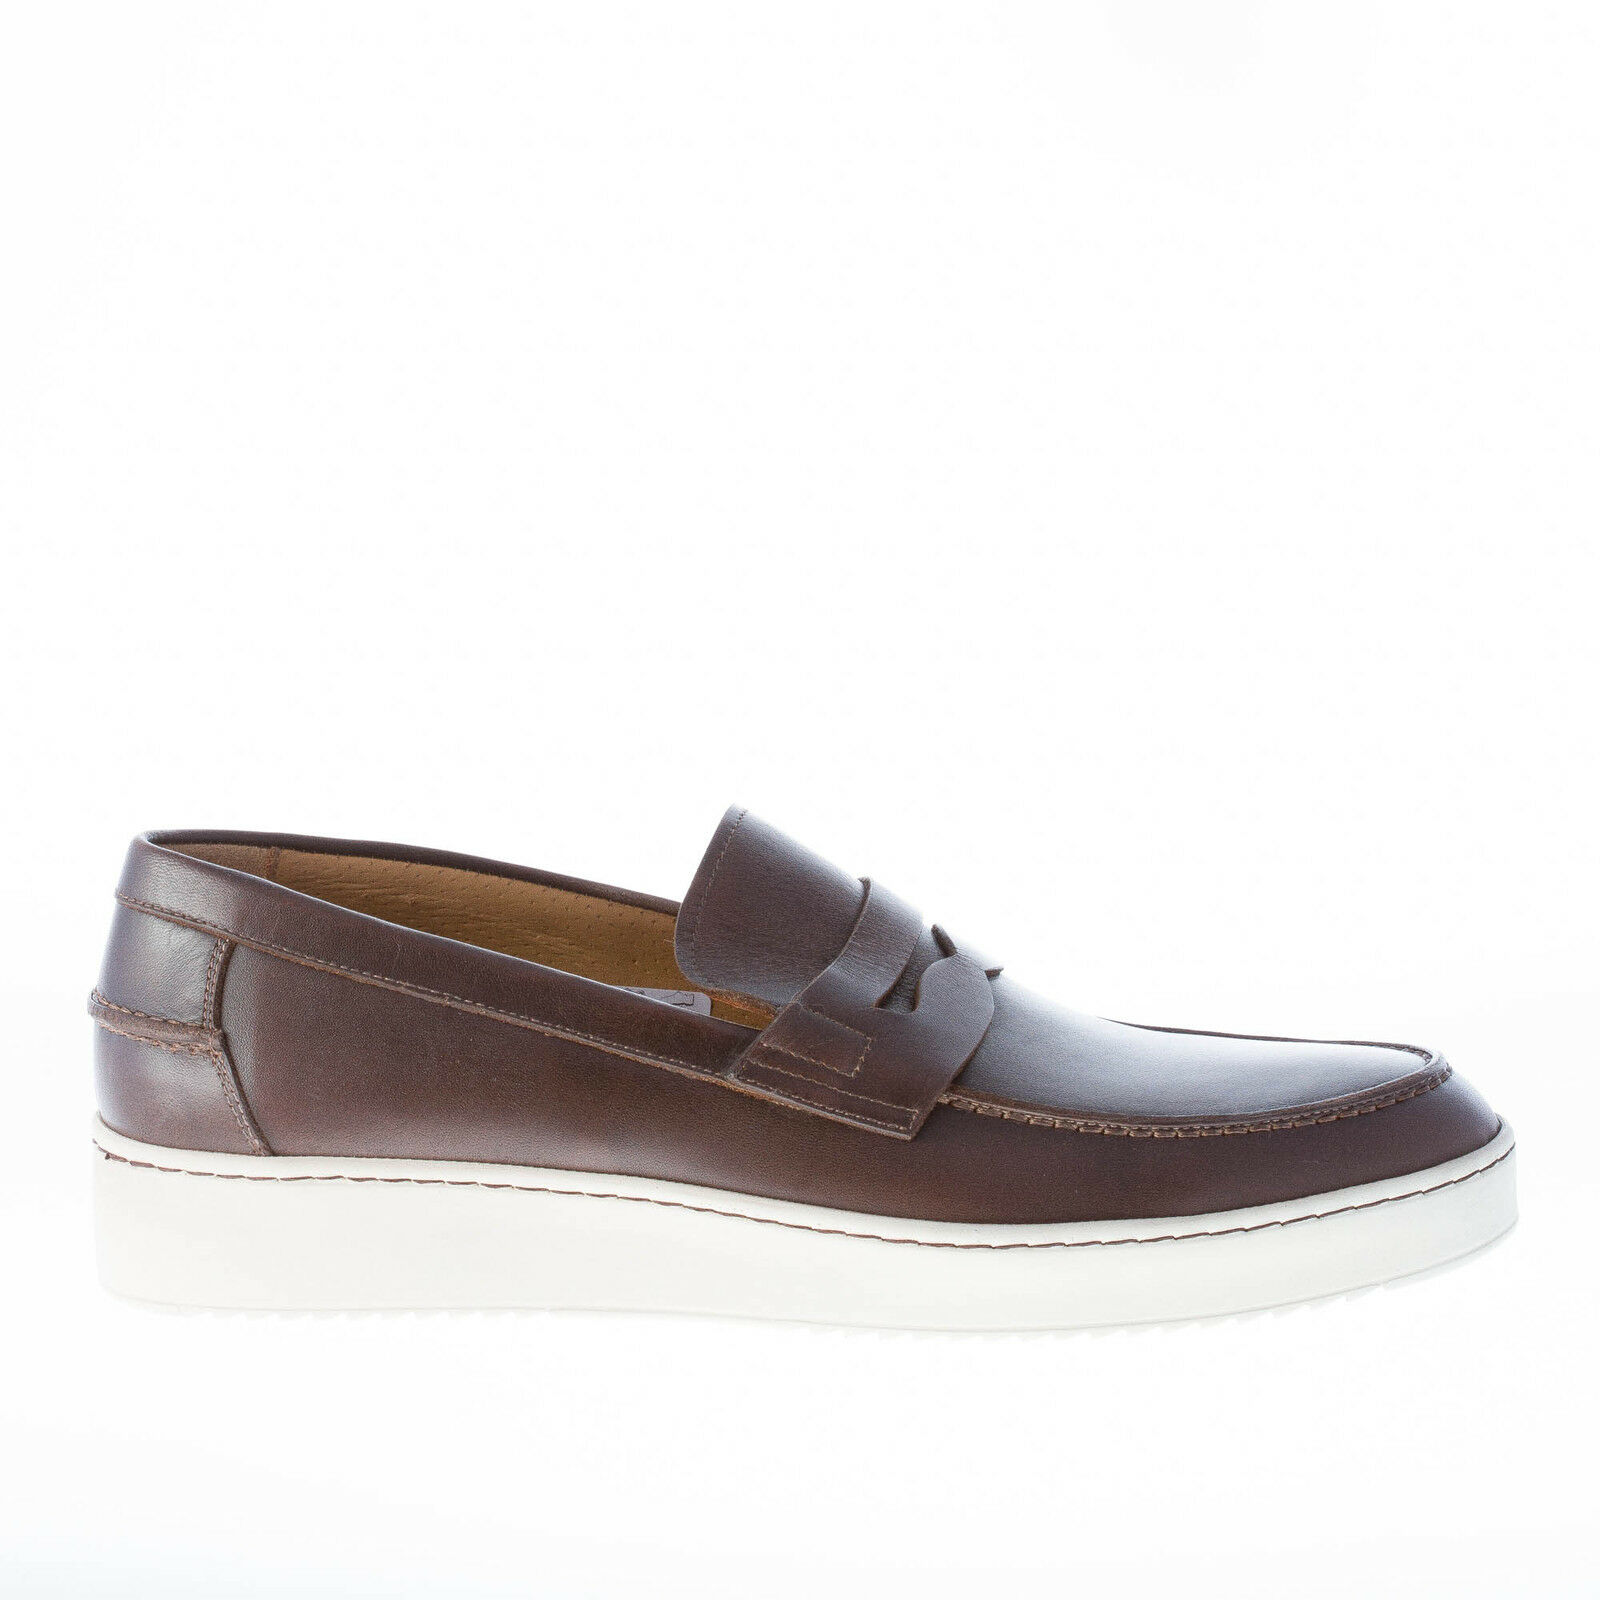 ROSSI chaussures homme Hommes chaussures marron cuir penny loafer